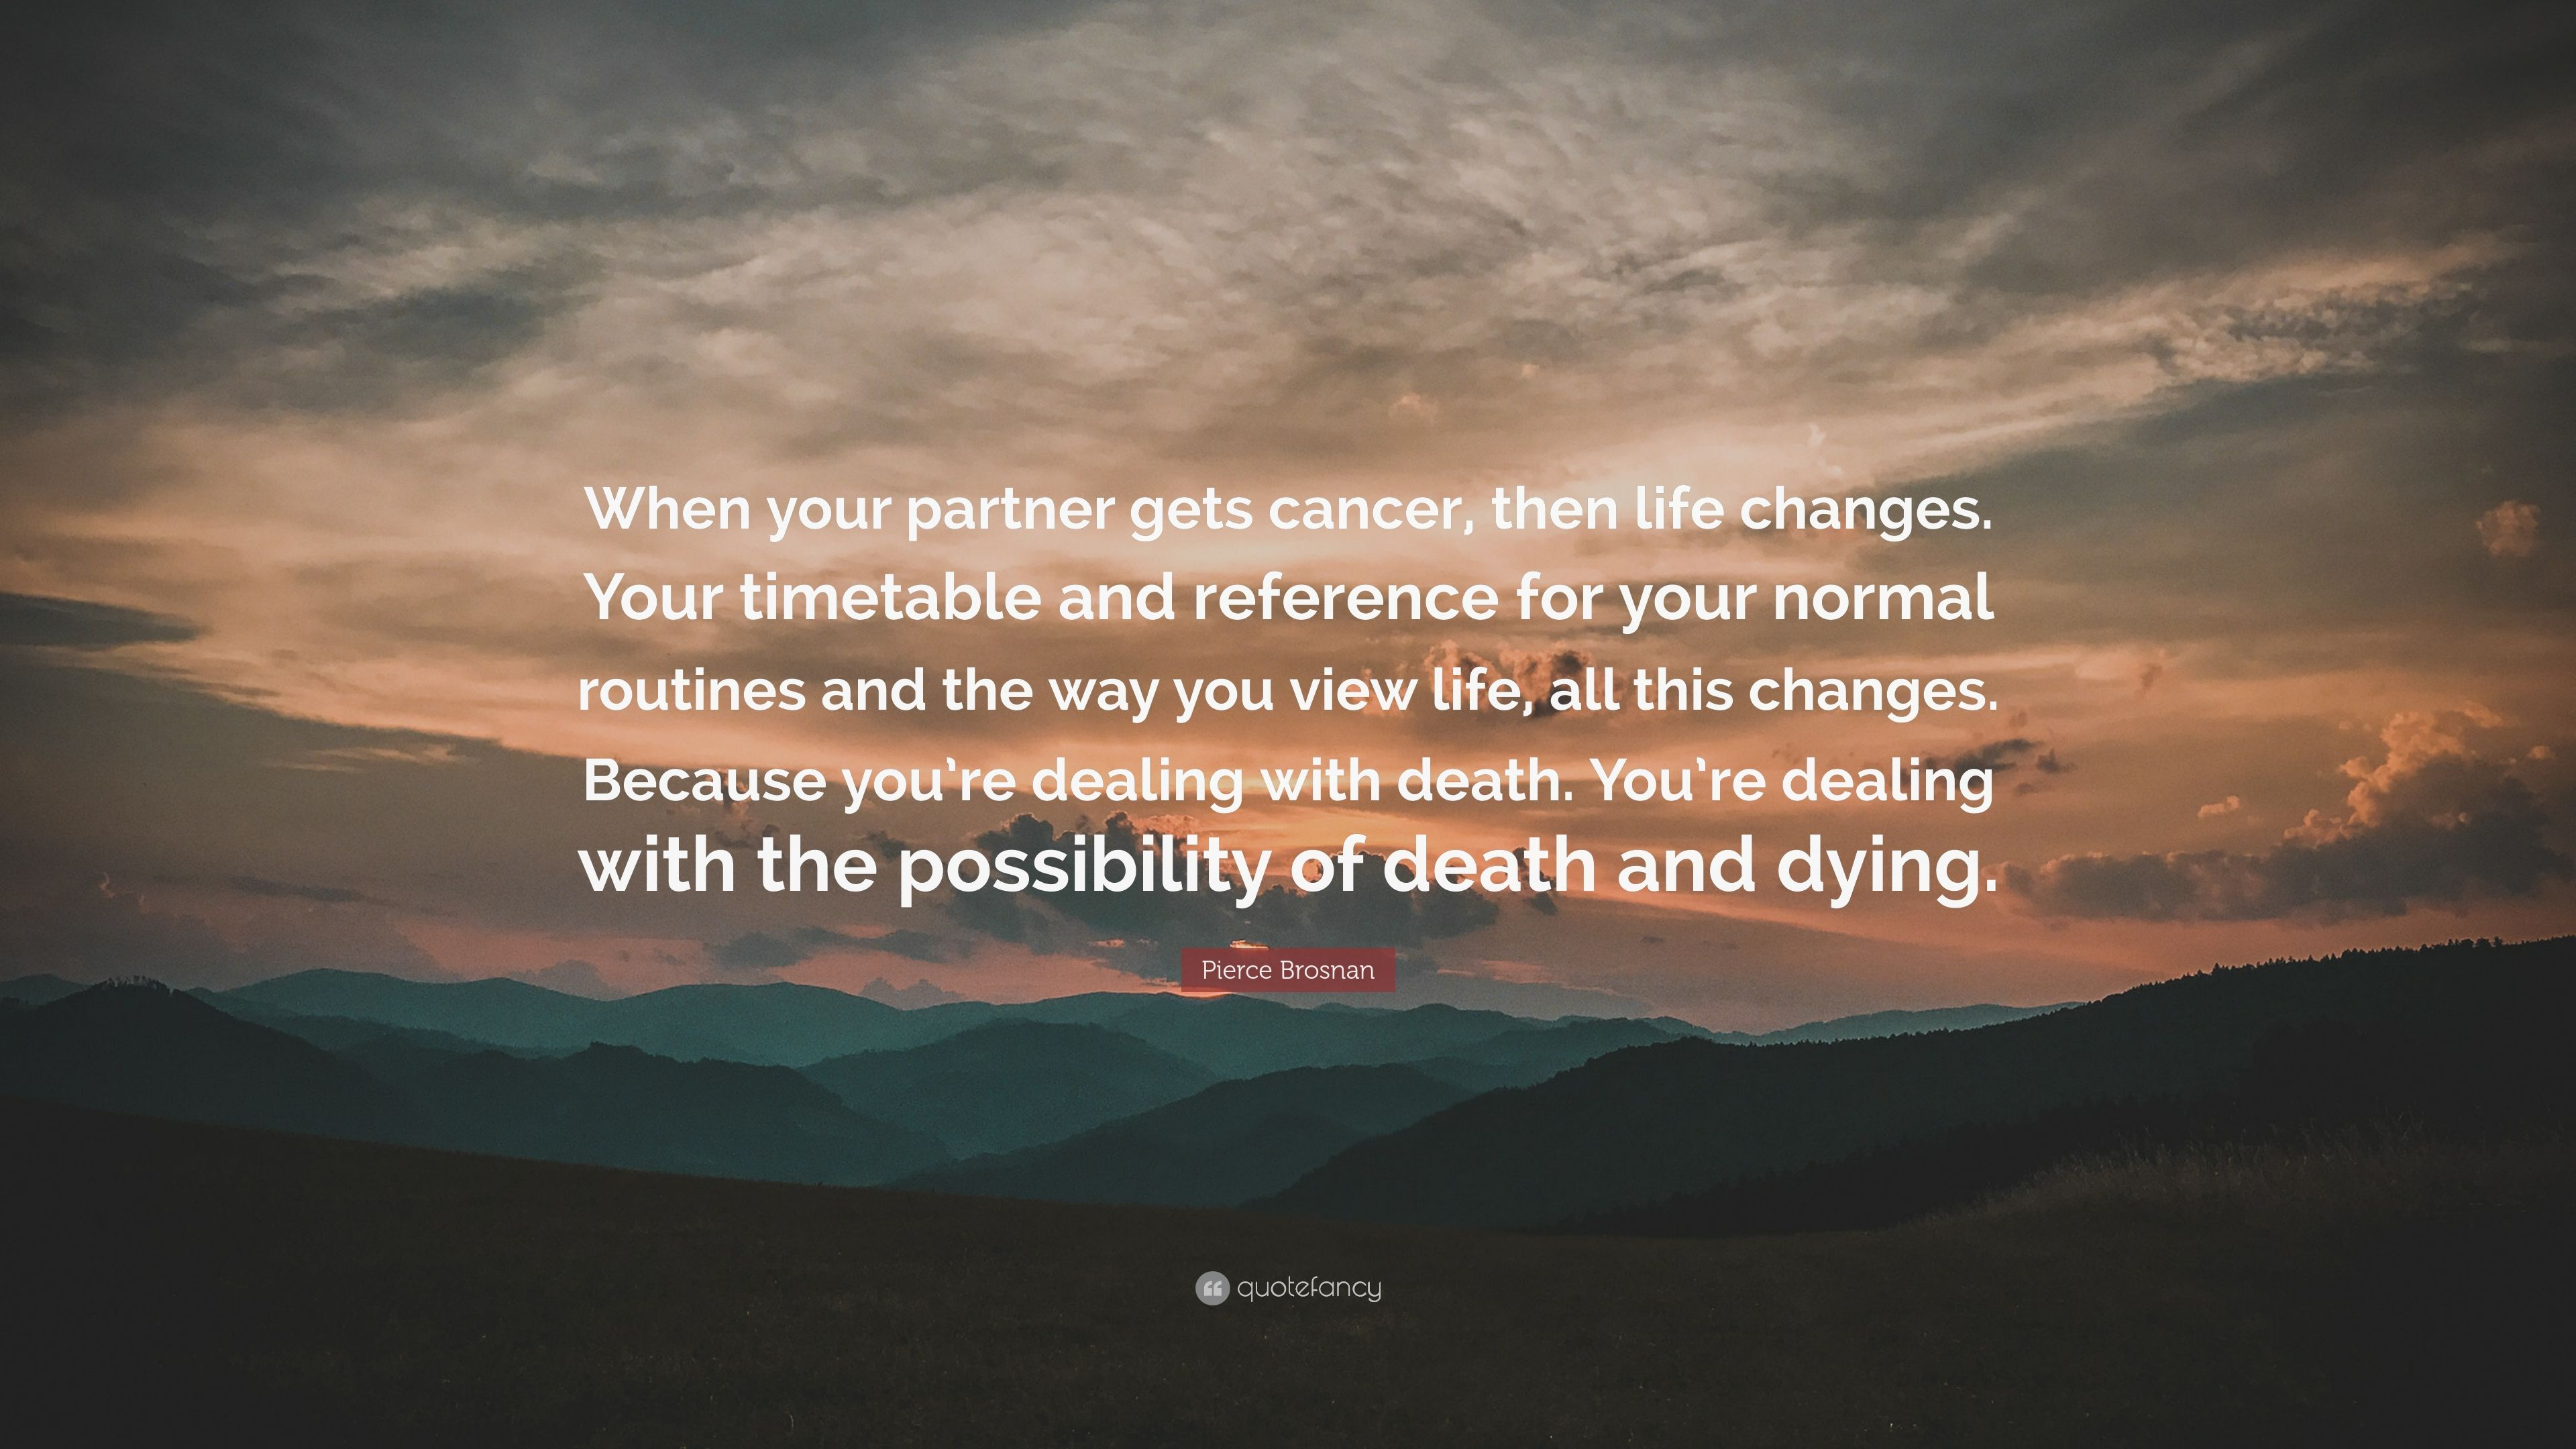 Changing for your partner